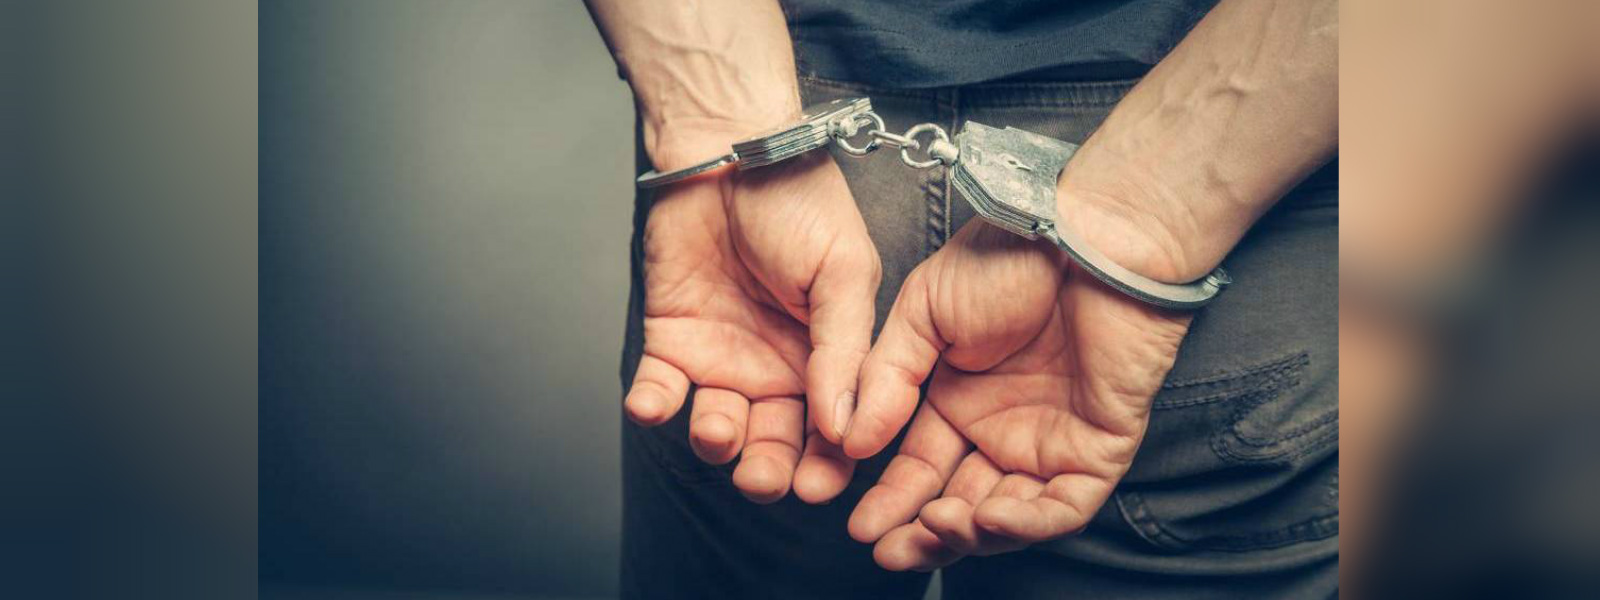 Suspect arrested with Kerala cannabis and ICE